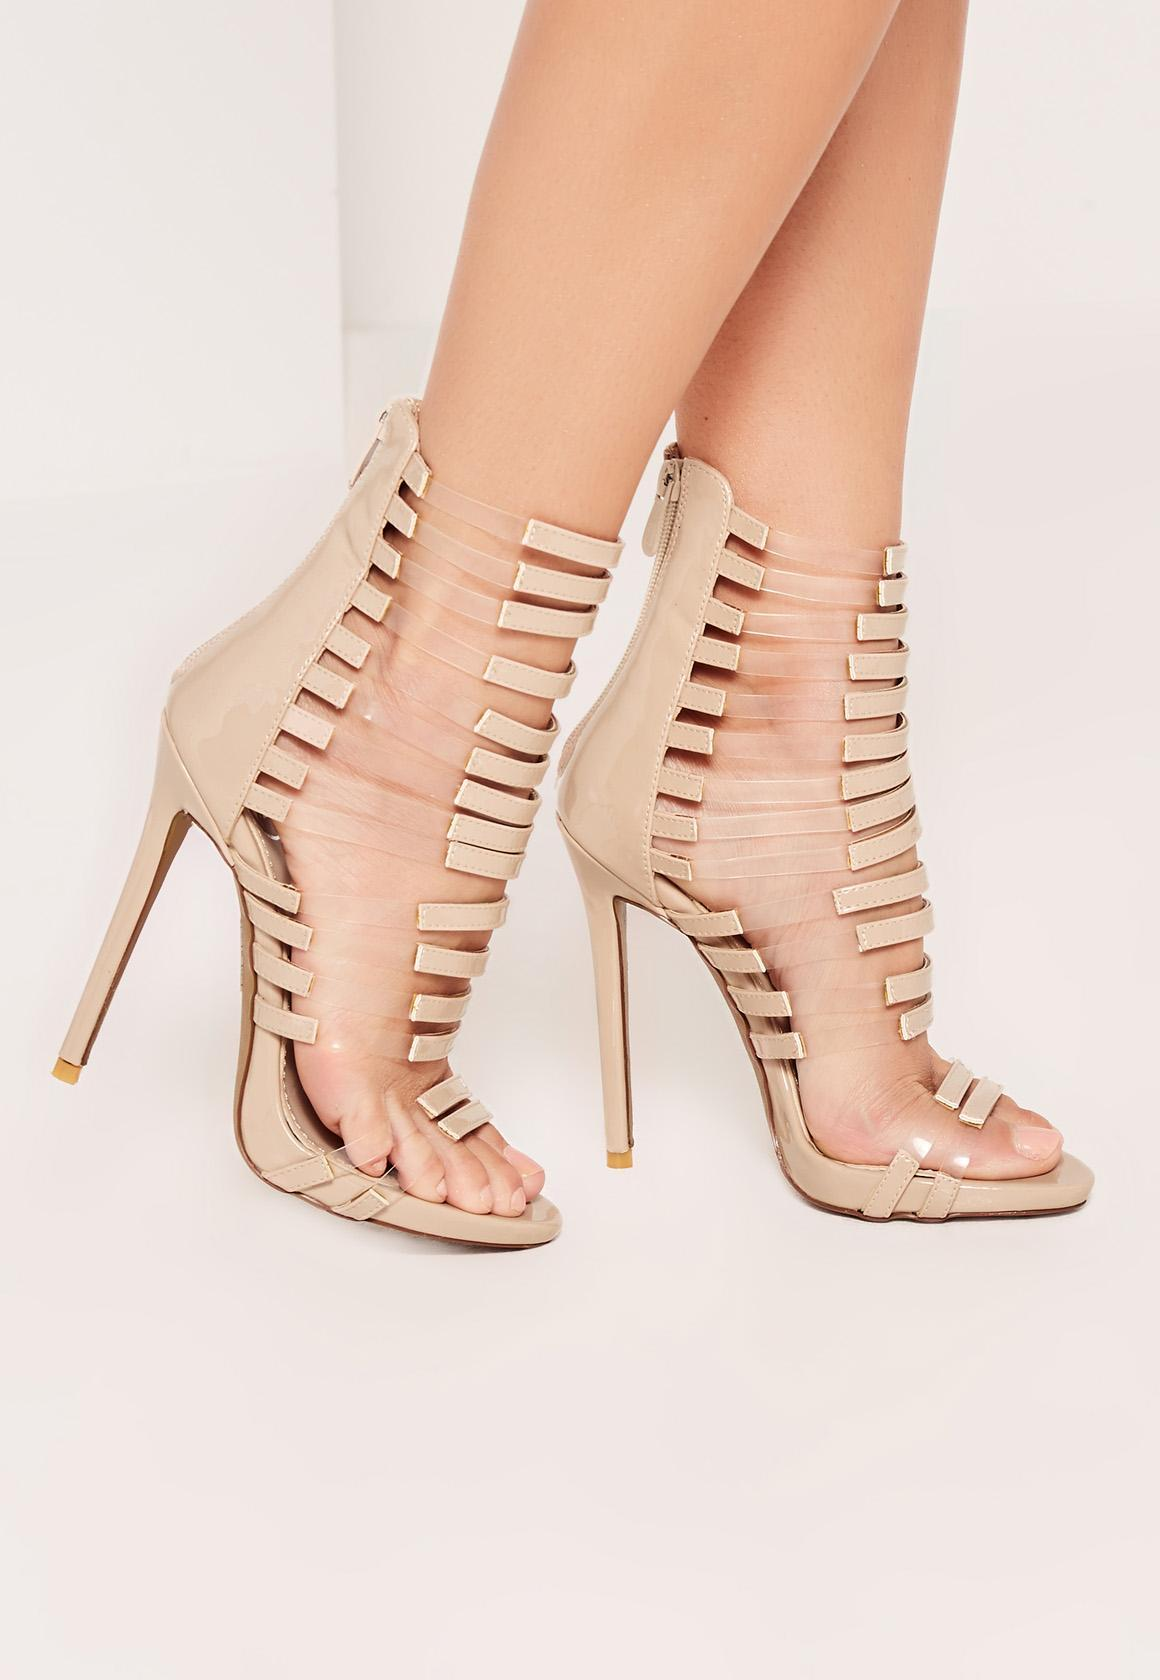 Burgundy Croc Chain Lace Up Heeled Sandals | Missguided